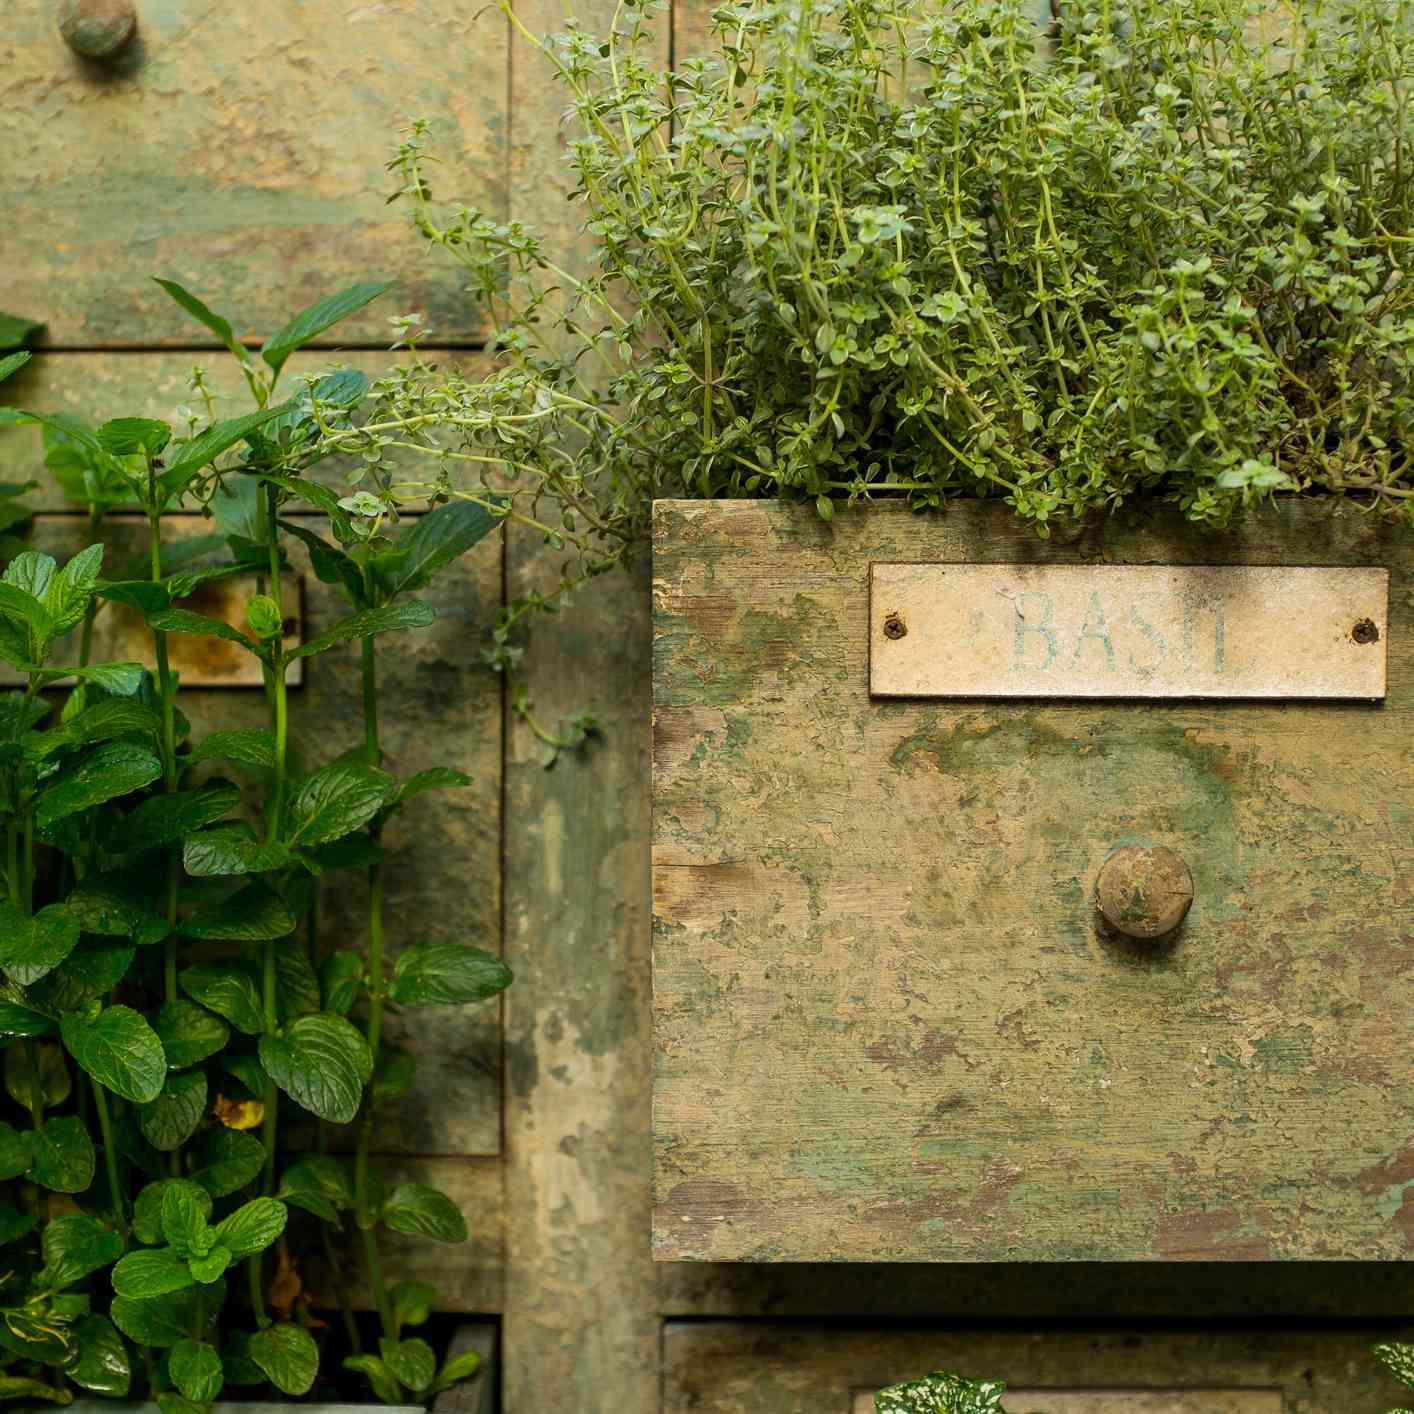 wooden card catalog with kitchen herbs growing in drawers